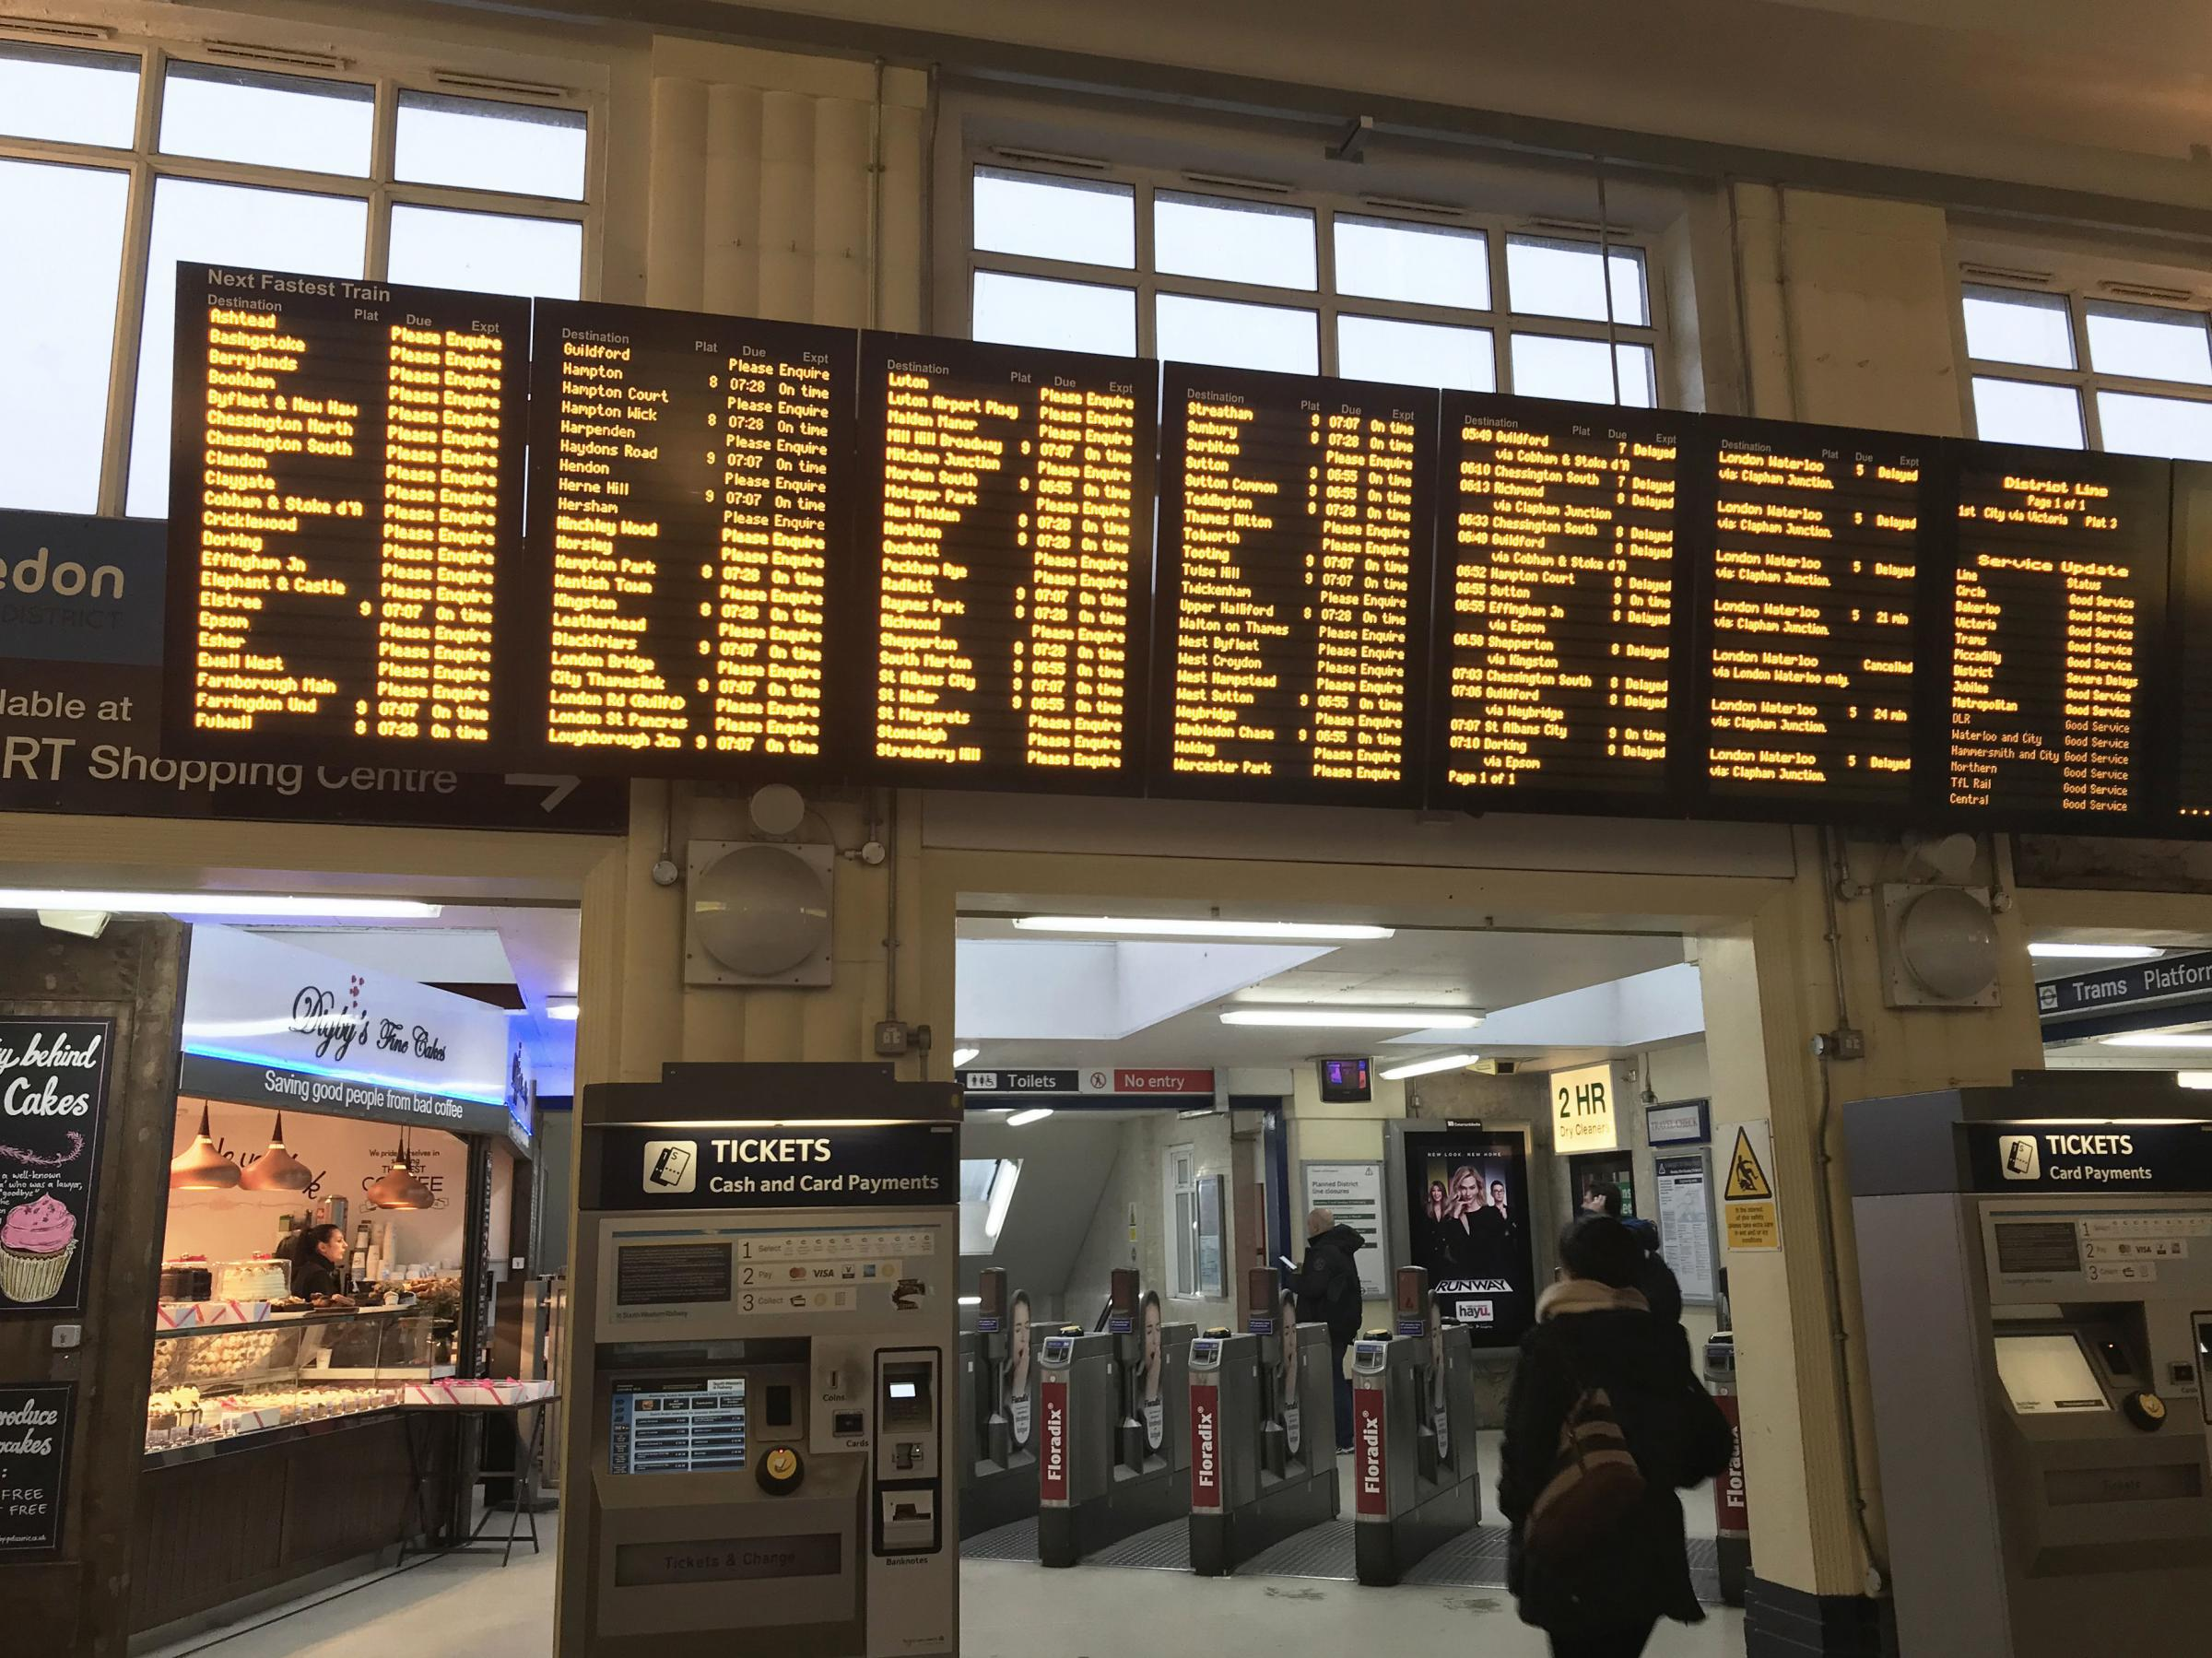 Departure screens at Wimbledon train station in London as overrunning engineering work at London Waterloo, the UK's busiest railway station, has caused major rush hour disruption. PRESS ASSOCIATION Photo. Picture date: Friday March 22, 2019.